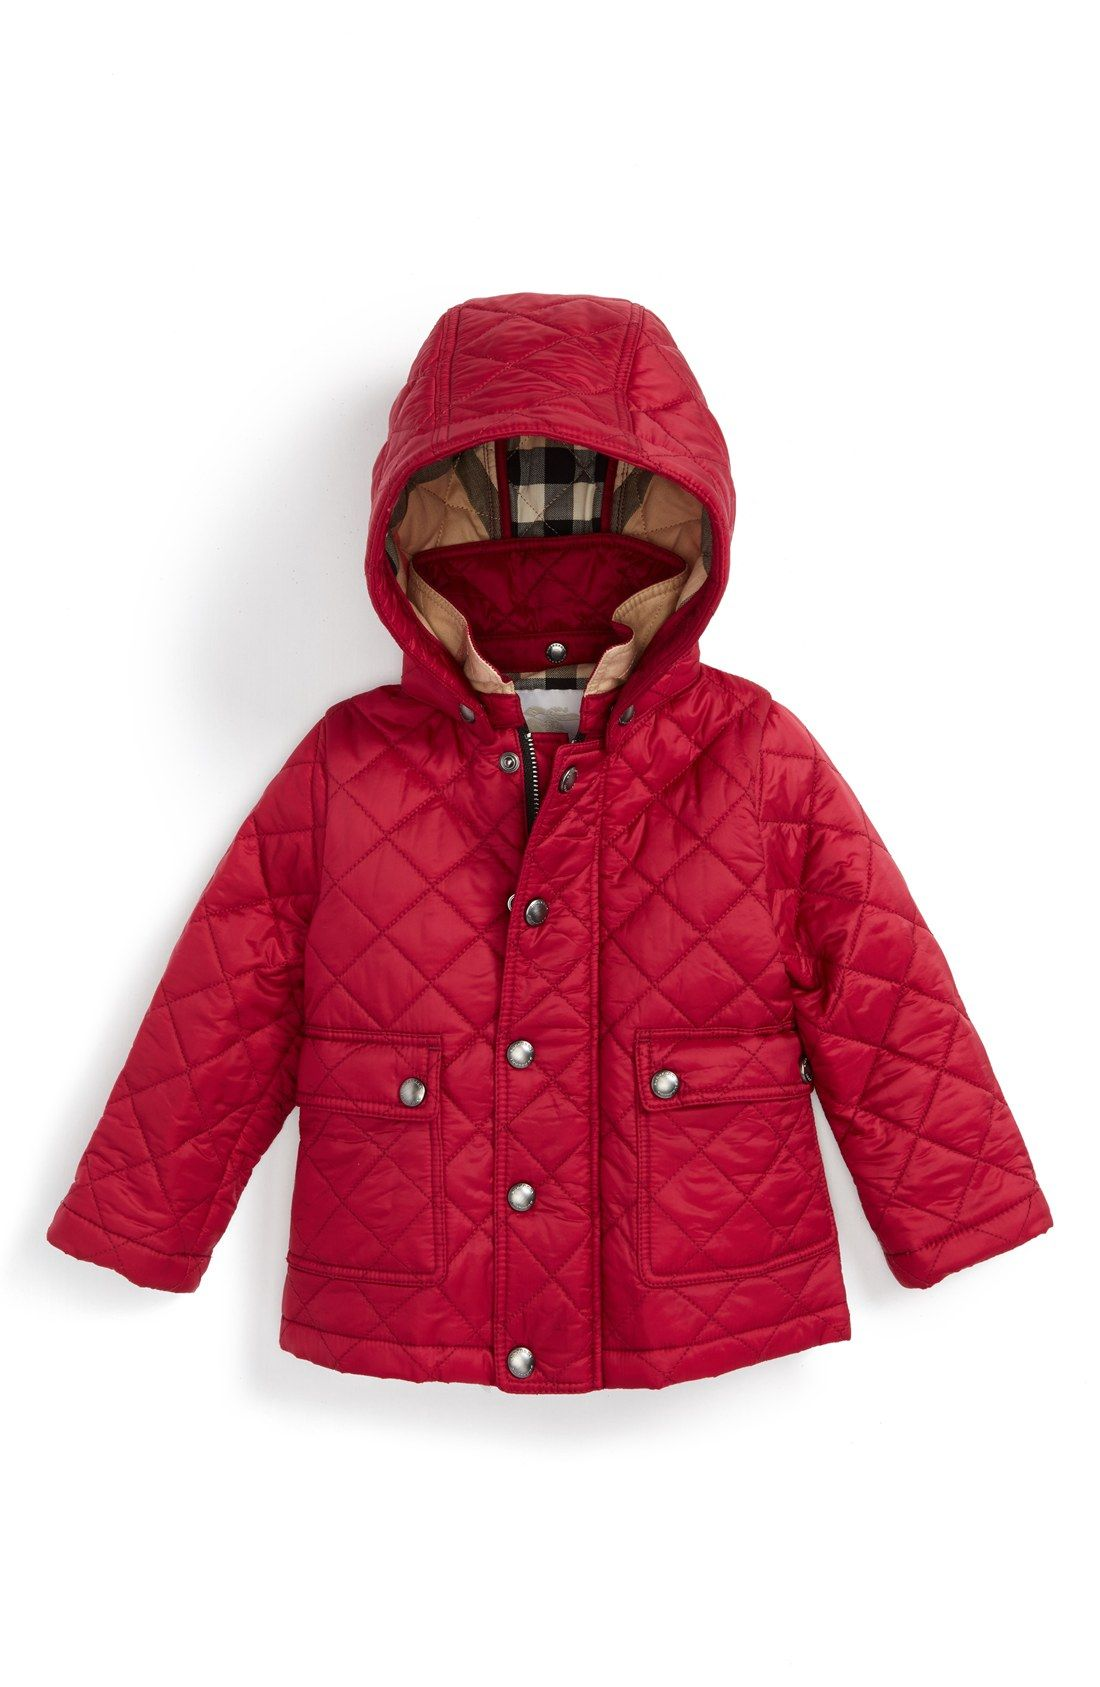 Burberry 'Jamie' Quilted Hooded Puffer Jacket (Baby Girls